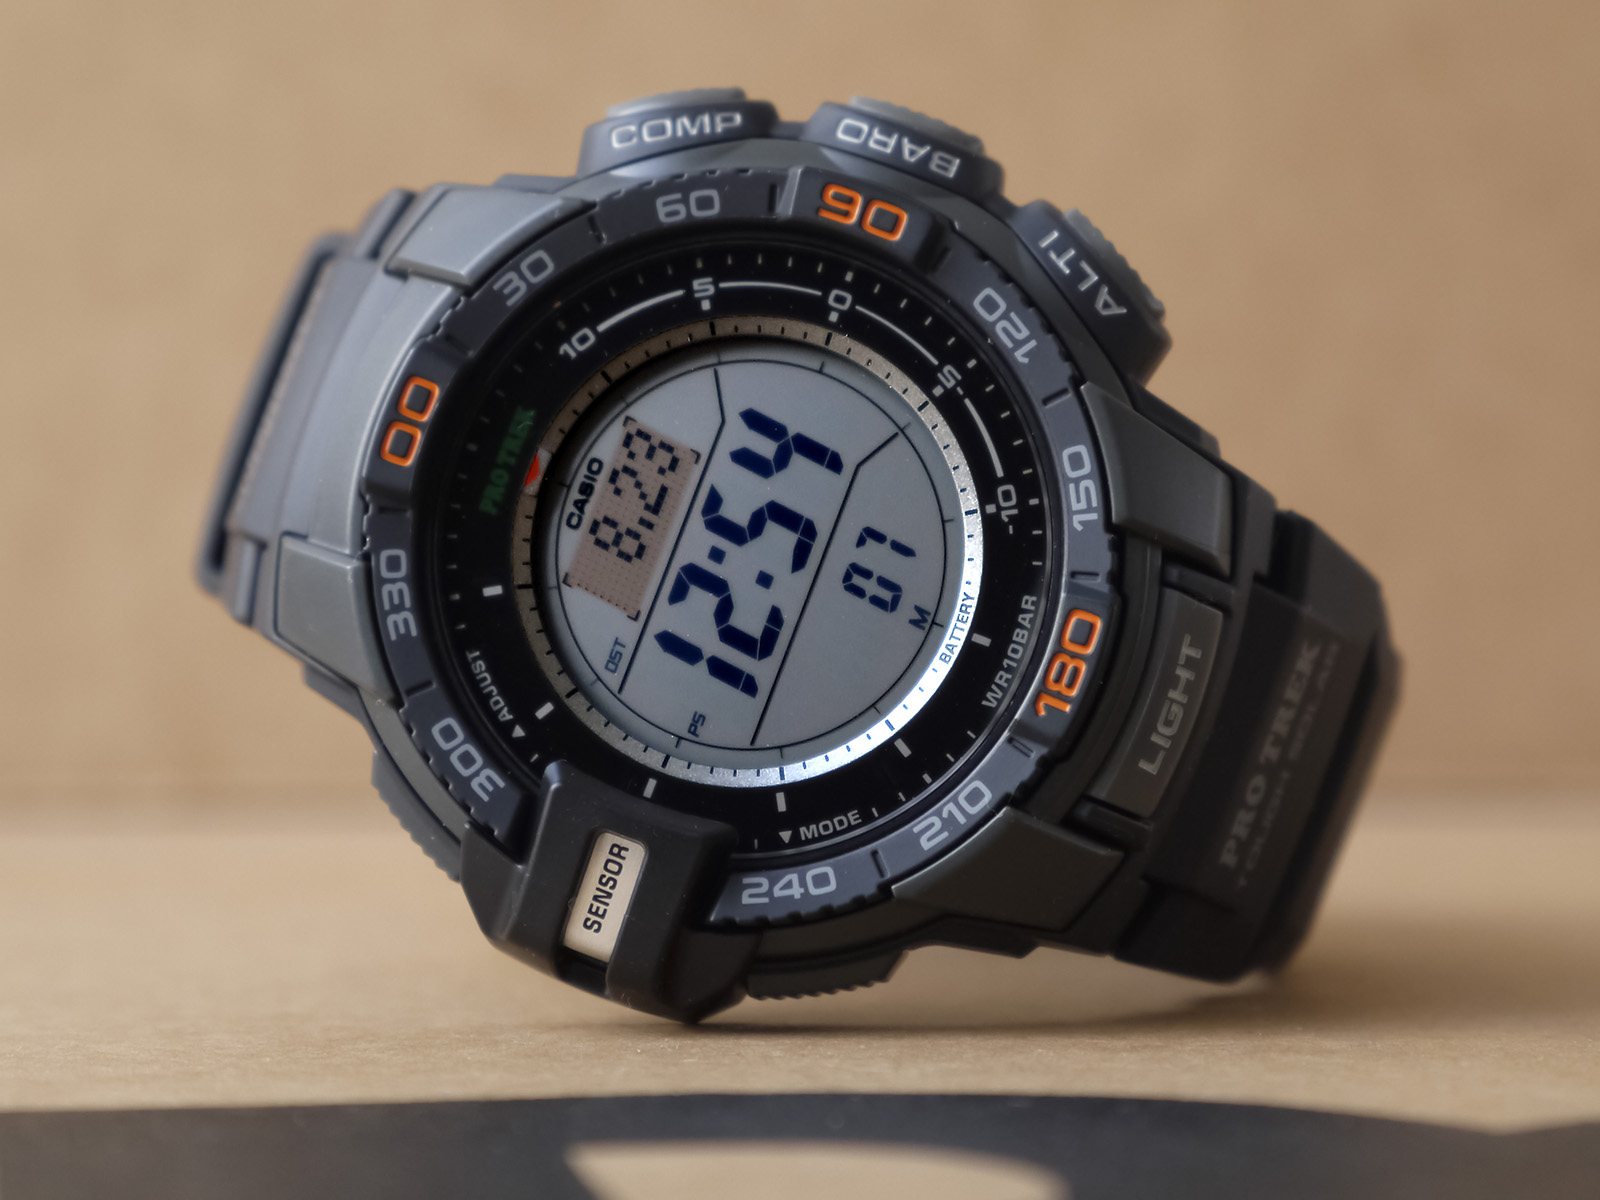 Casio Protrek Prg 270 1 Watch ⋆ High Quality Watch Gallery